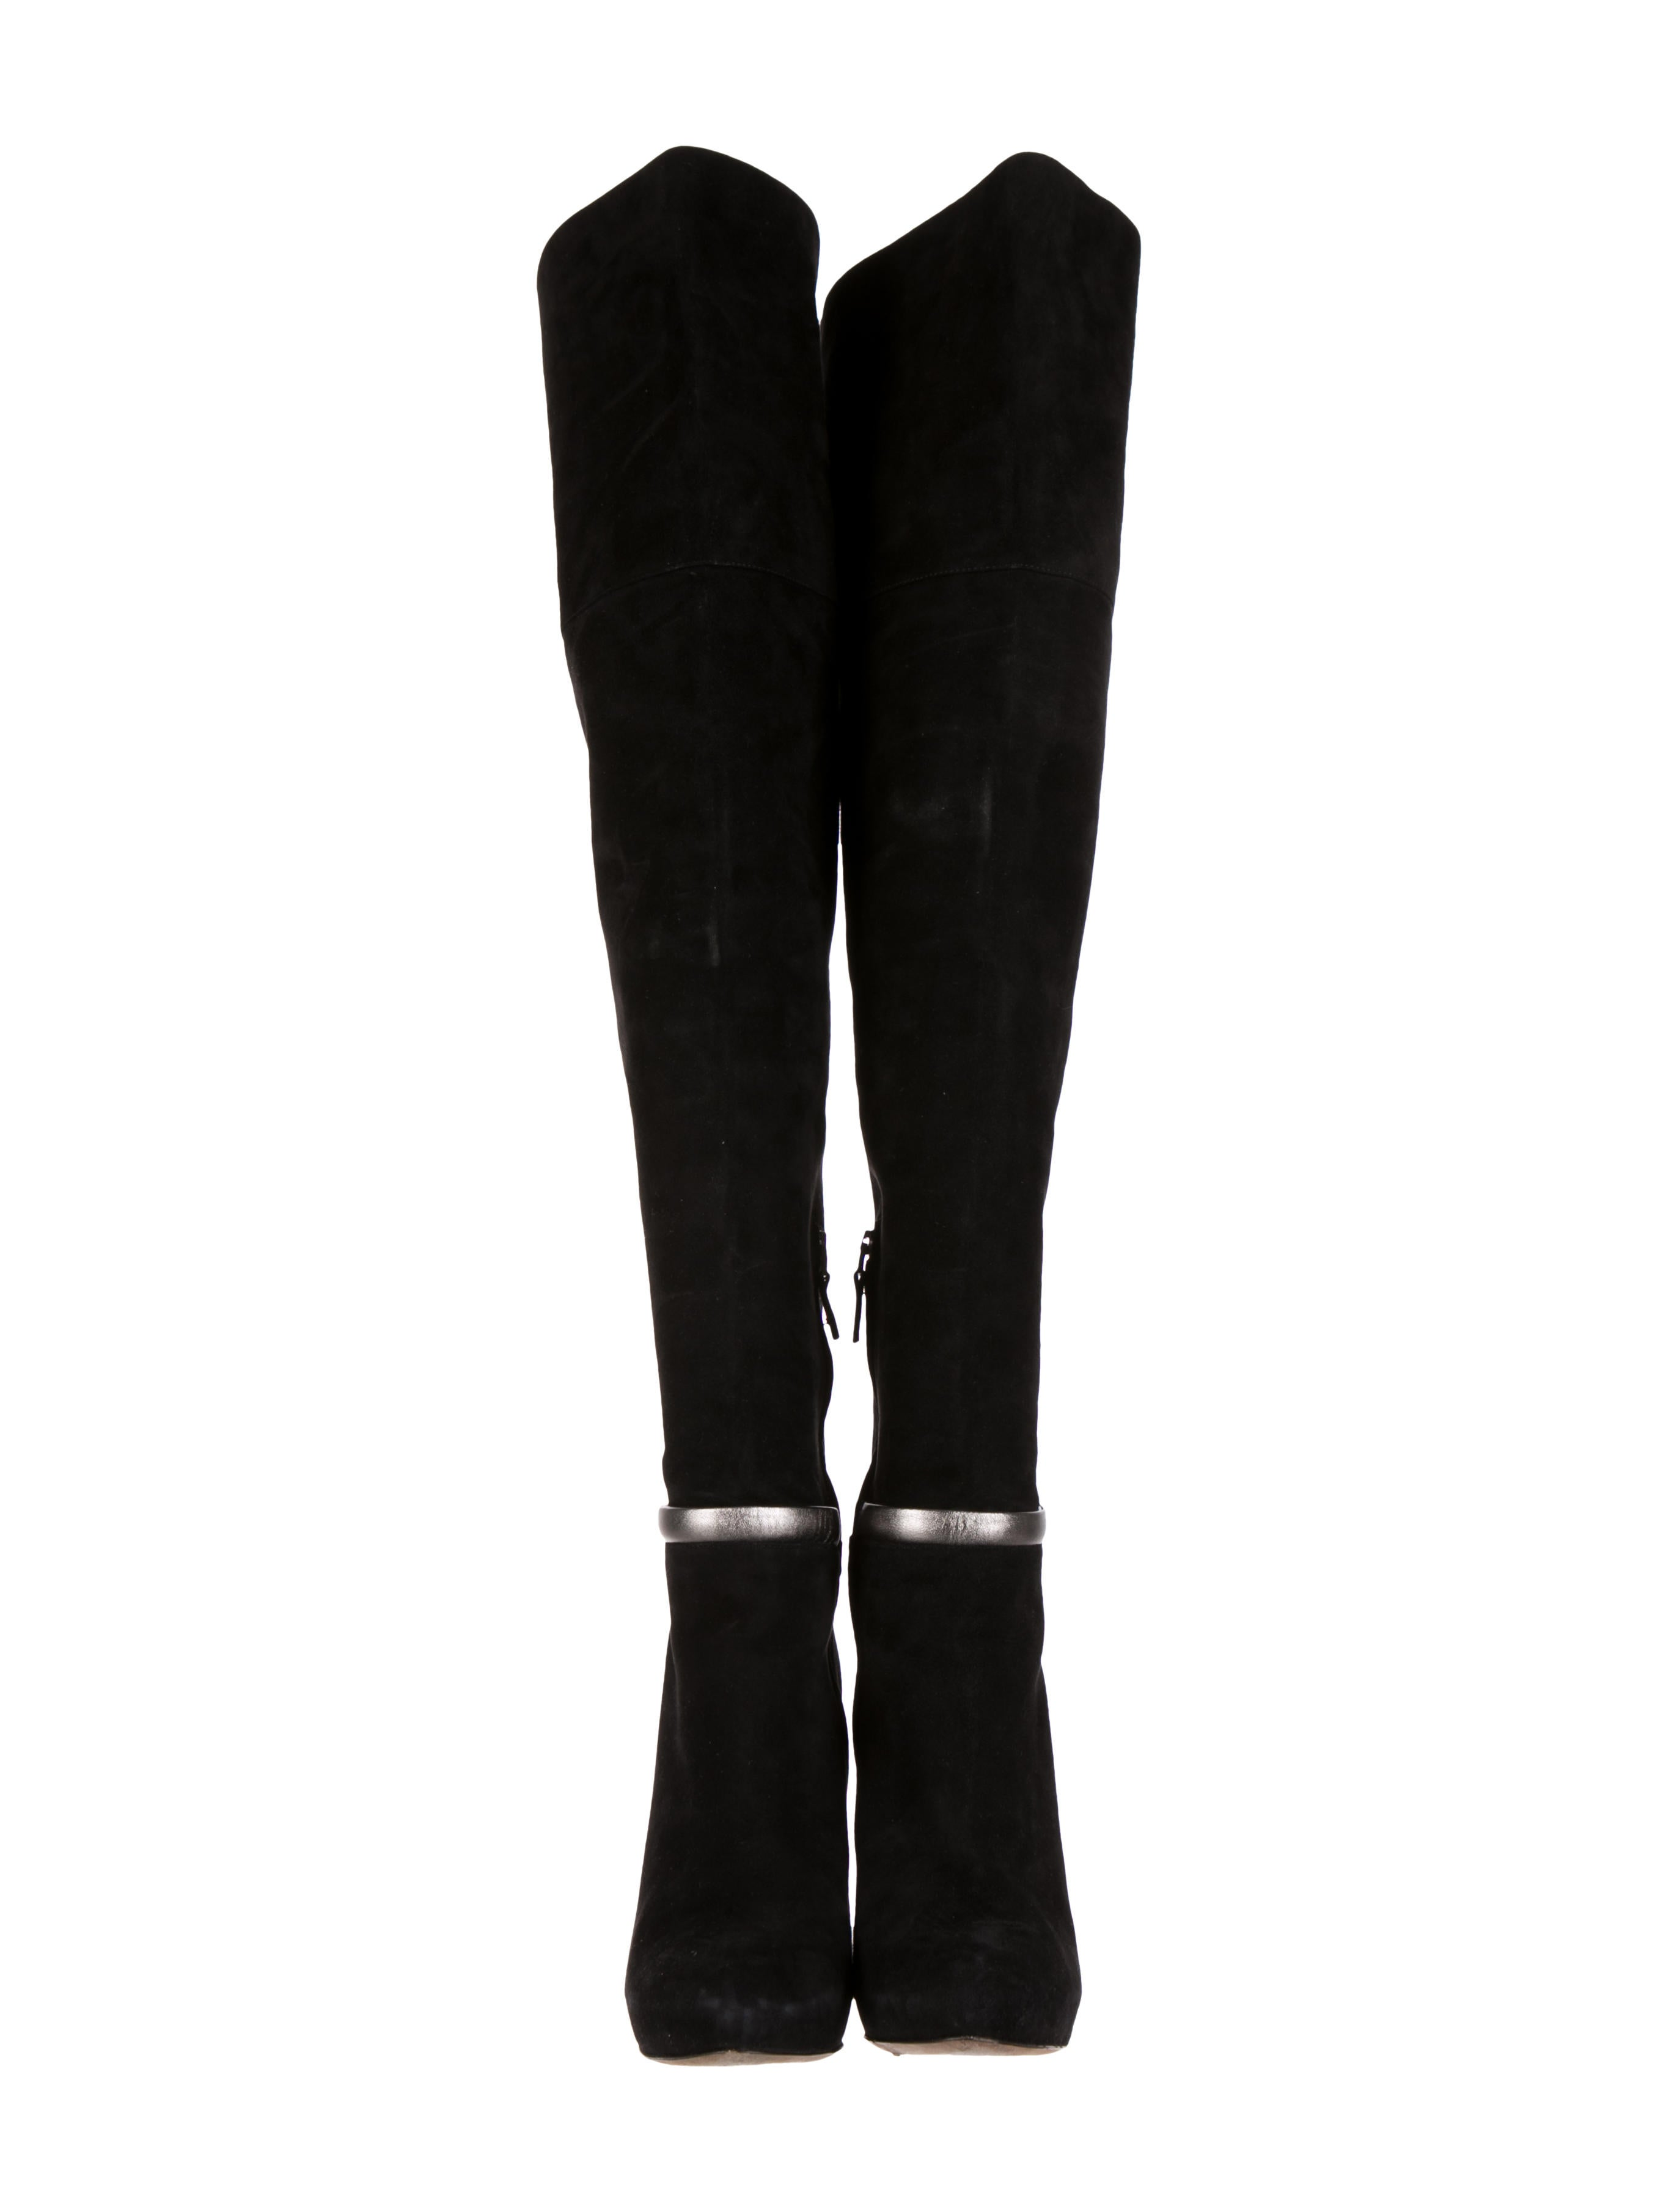 Fendi Suede Over-The-Knee Boots big discount for sale hot sale online nicekicks release dates authentic discount low shipping bdQGqD